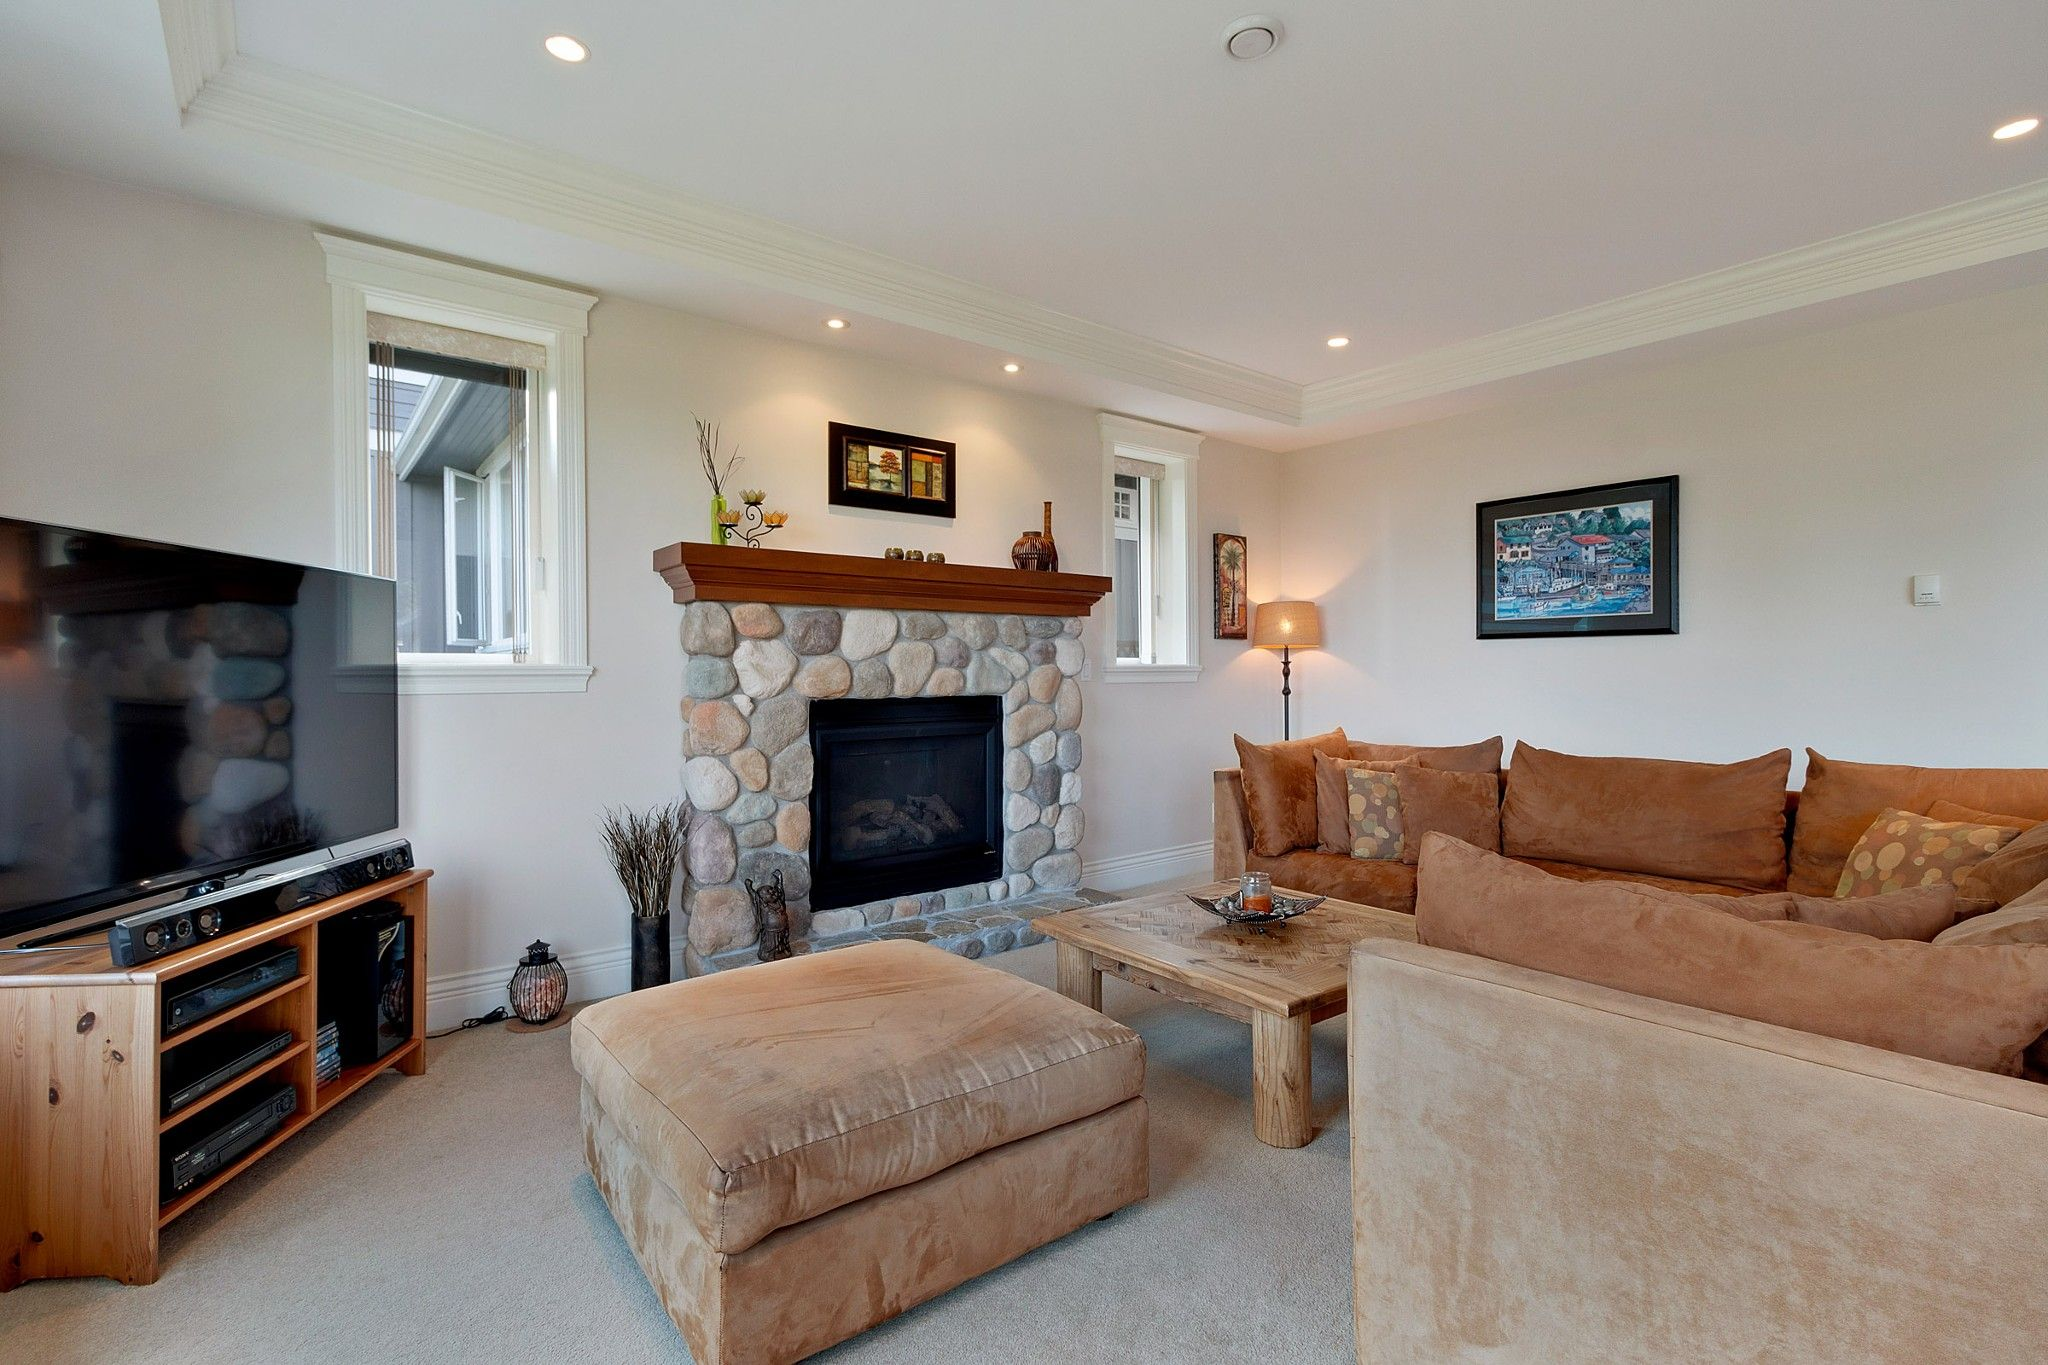 Photo 10: Photos: 1237 DYCK Road in North Vancouver: Lynn Valley House for sale : MLS®# R2374868